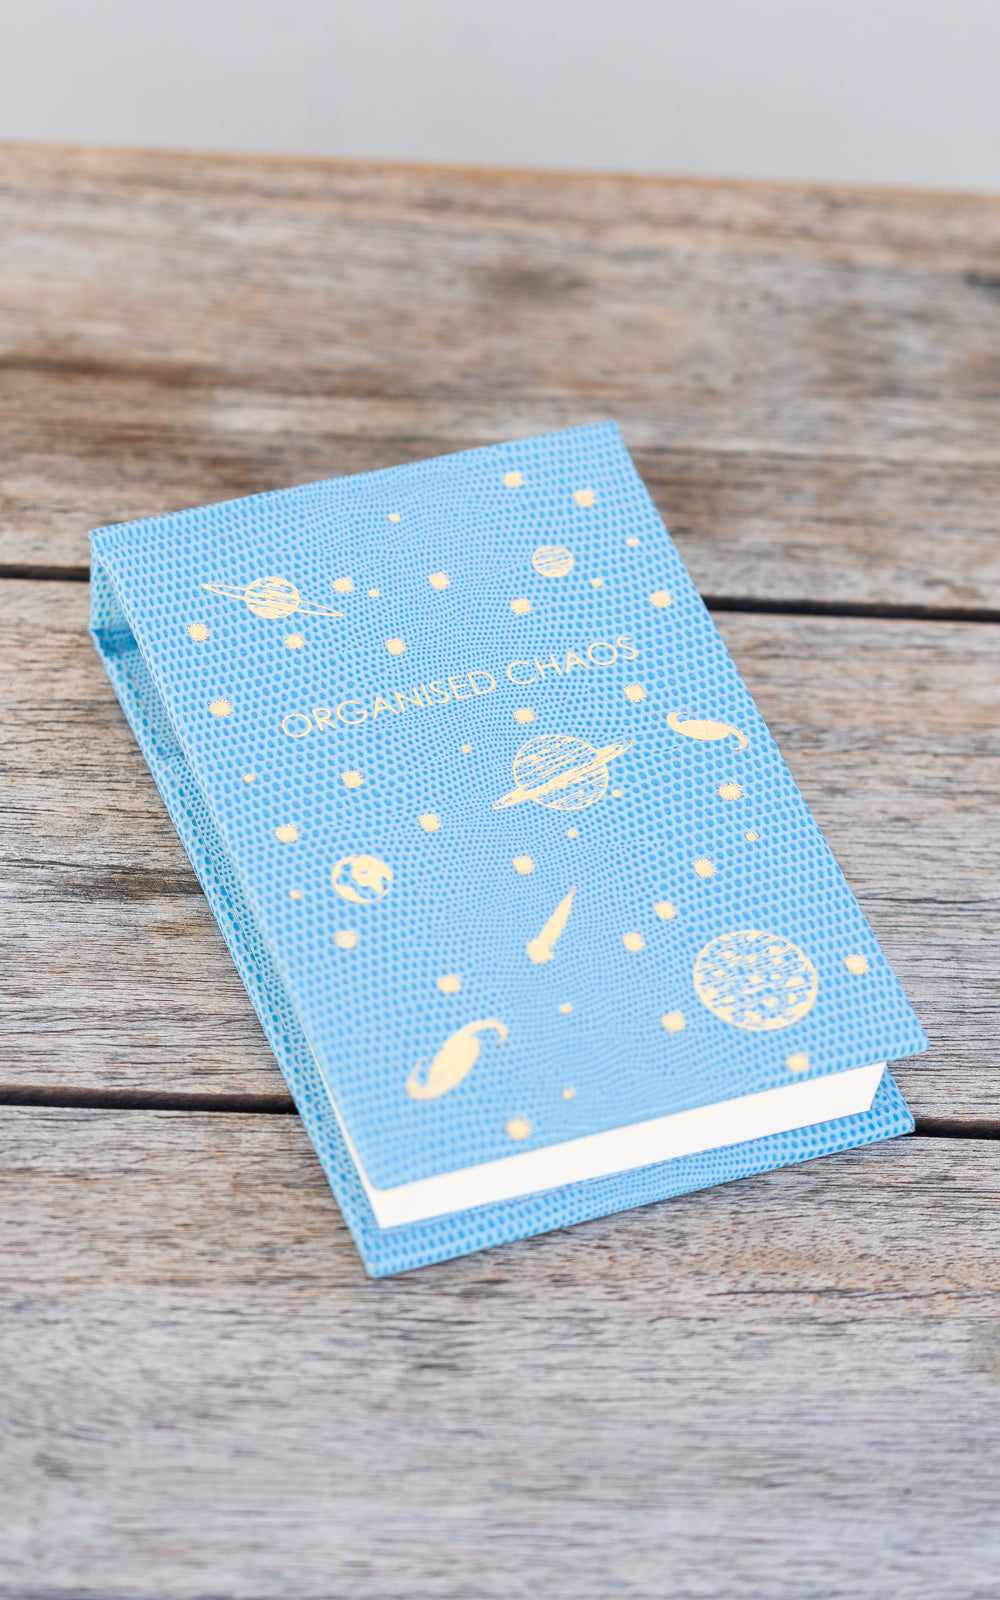 Sloane Stationary notepad in blue with gold